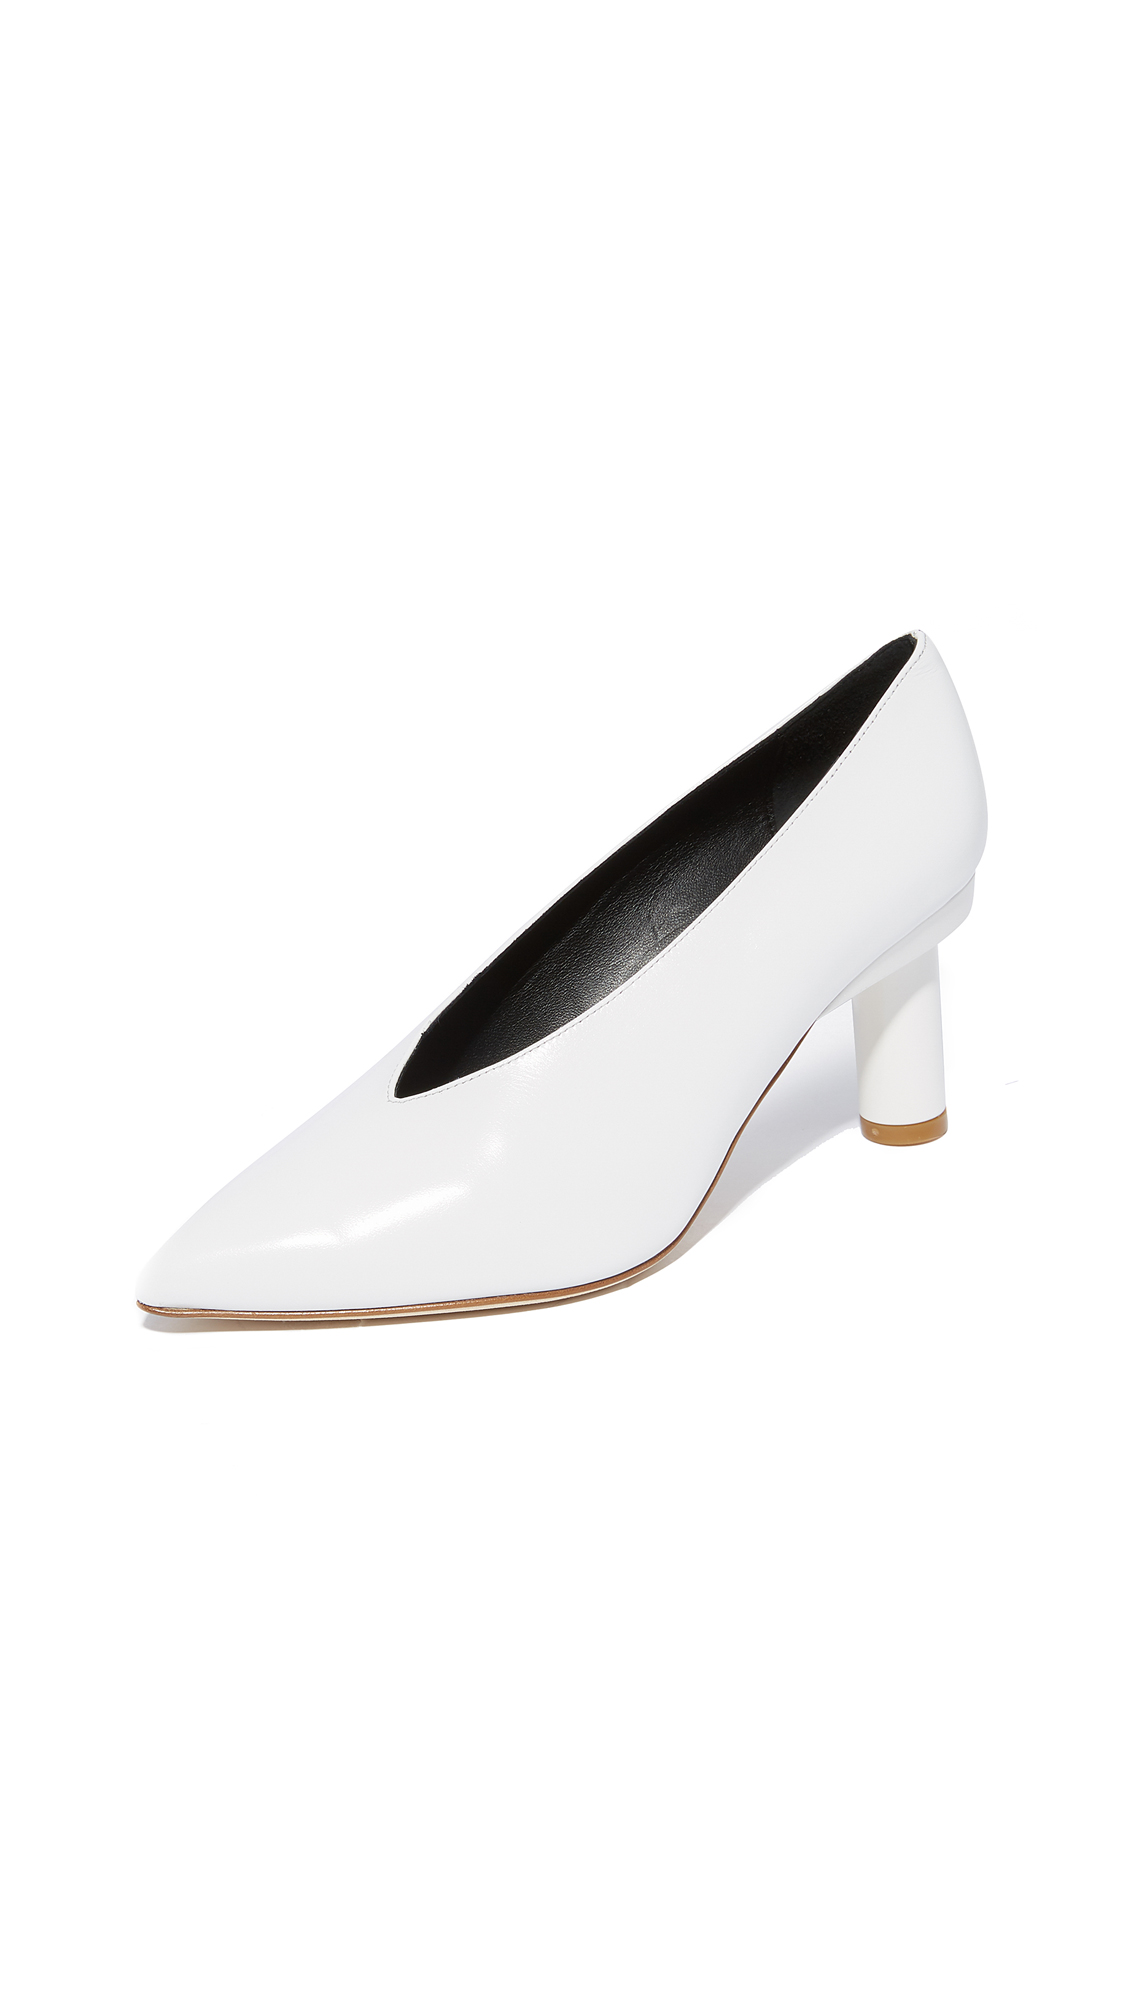 Tibi Zuri Choke Up Pumps - Bright White